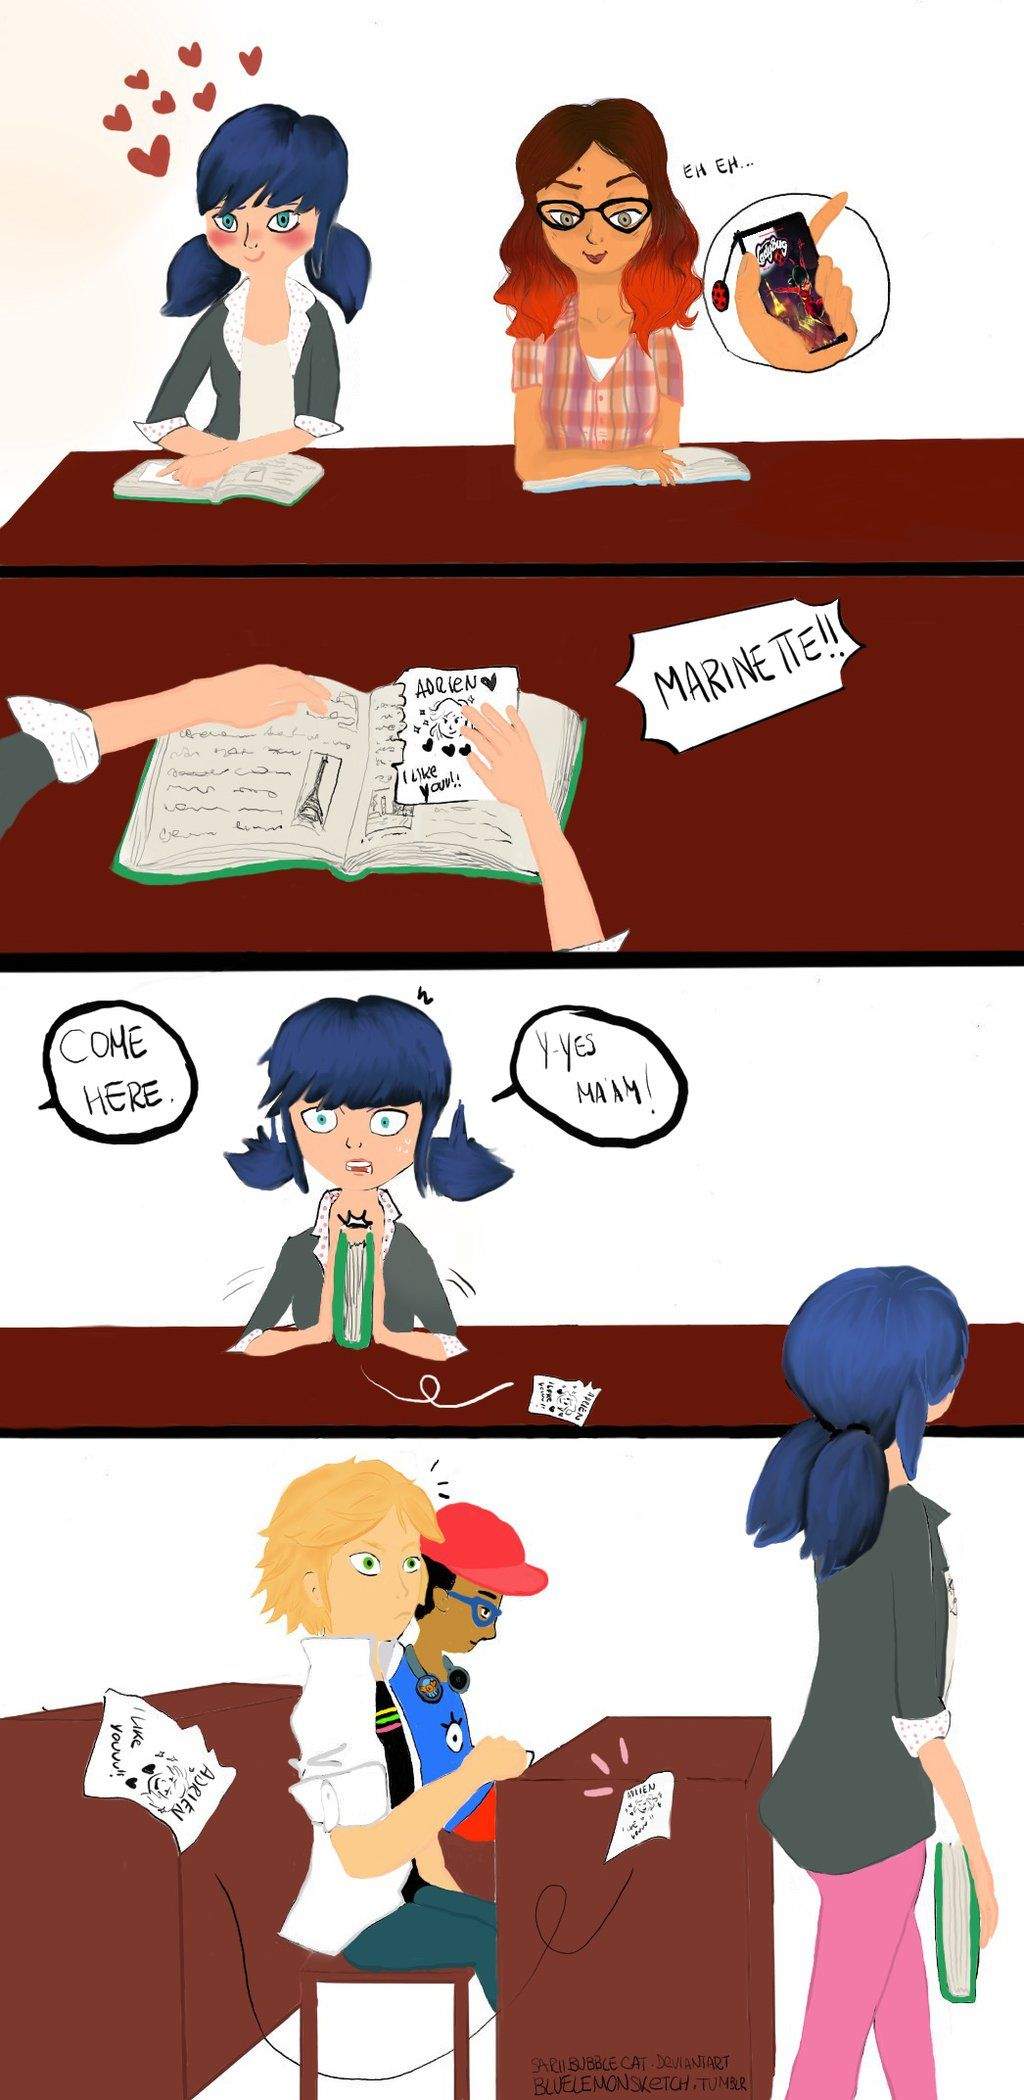 Marinette's sketch by Sariibubblecat.deviantart.com on @DeviantArt